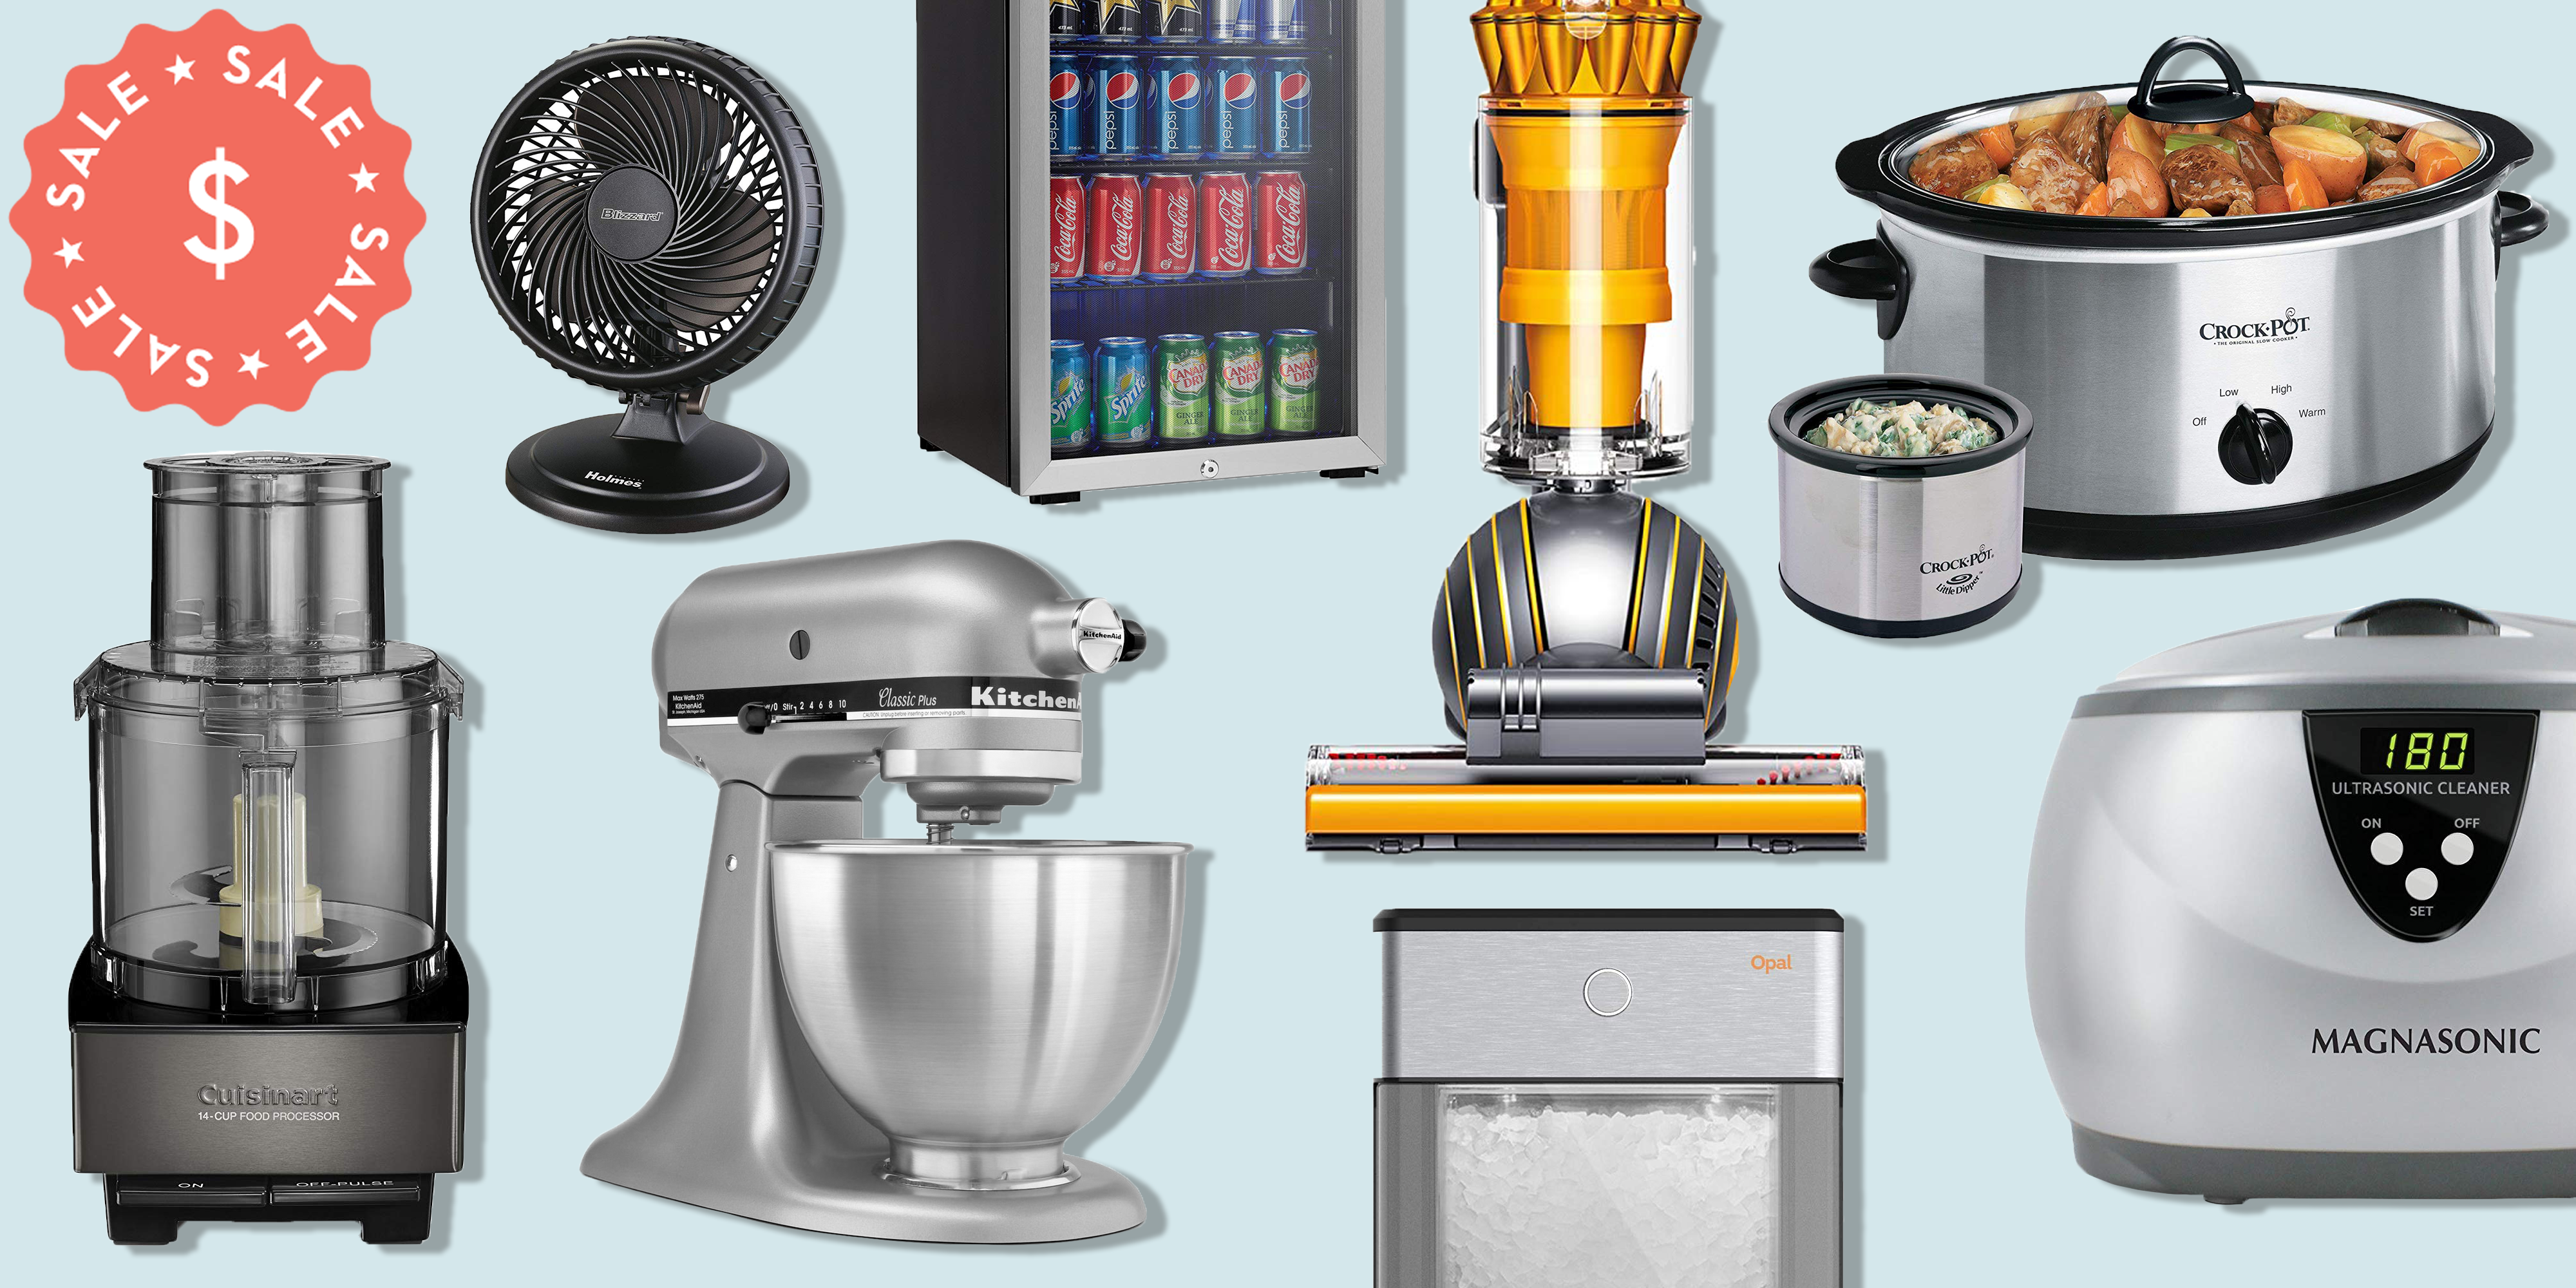 Best Amazon Prime Day Appliance Sales 2019 Deals On Vacuums